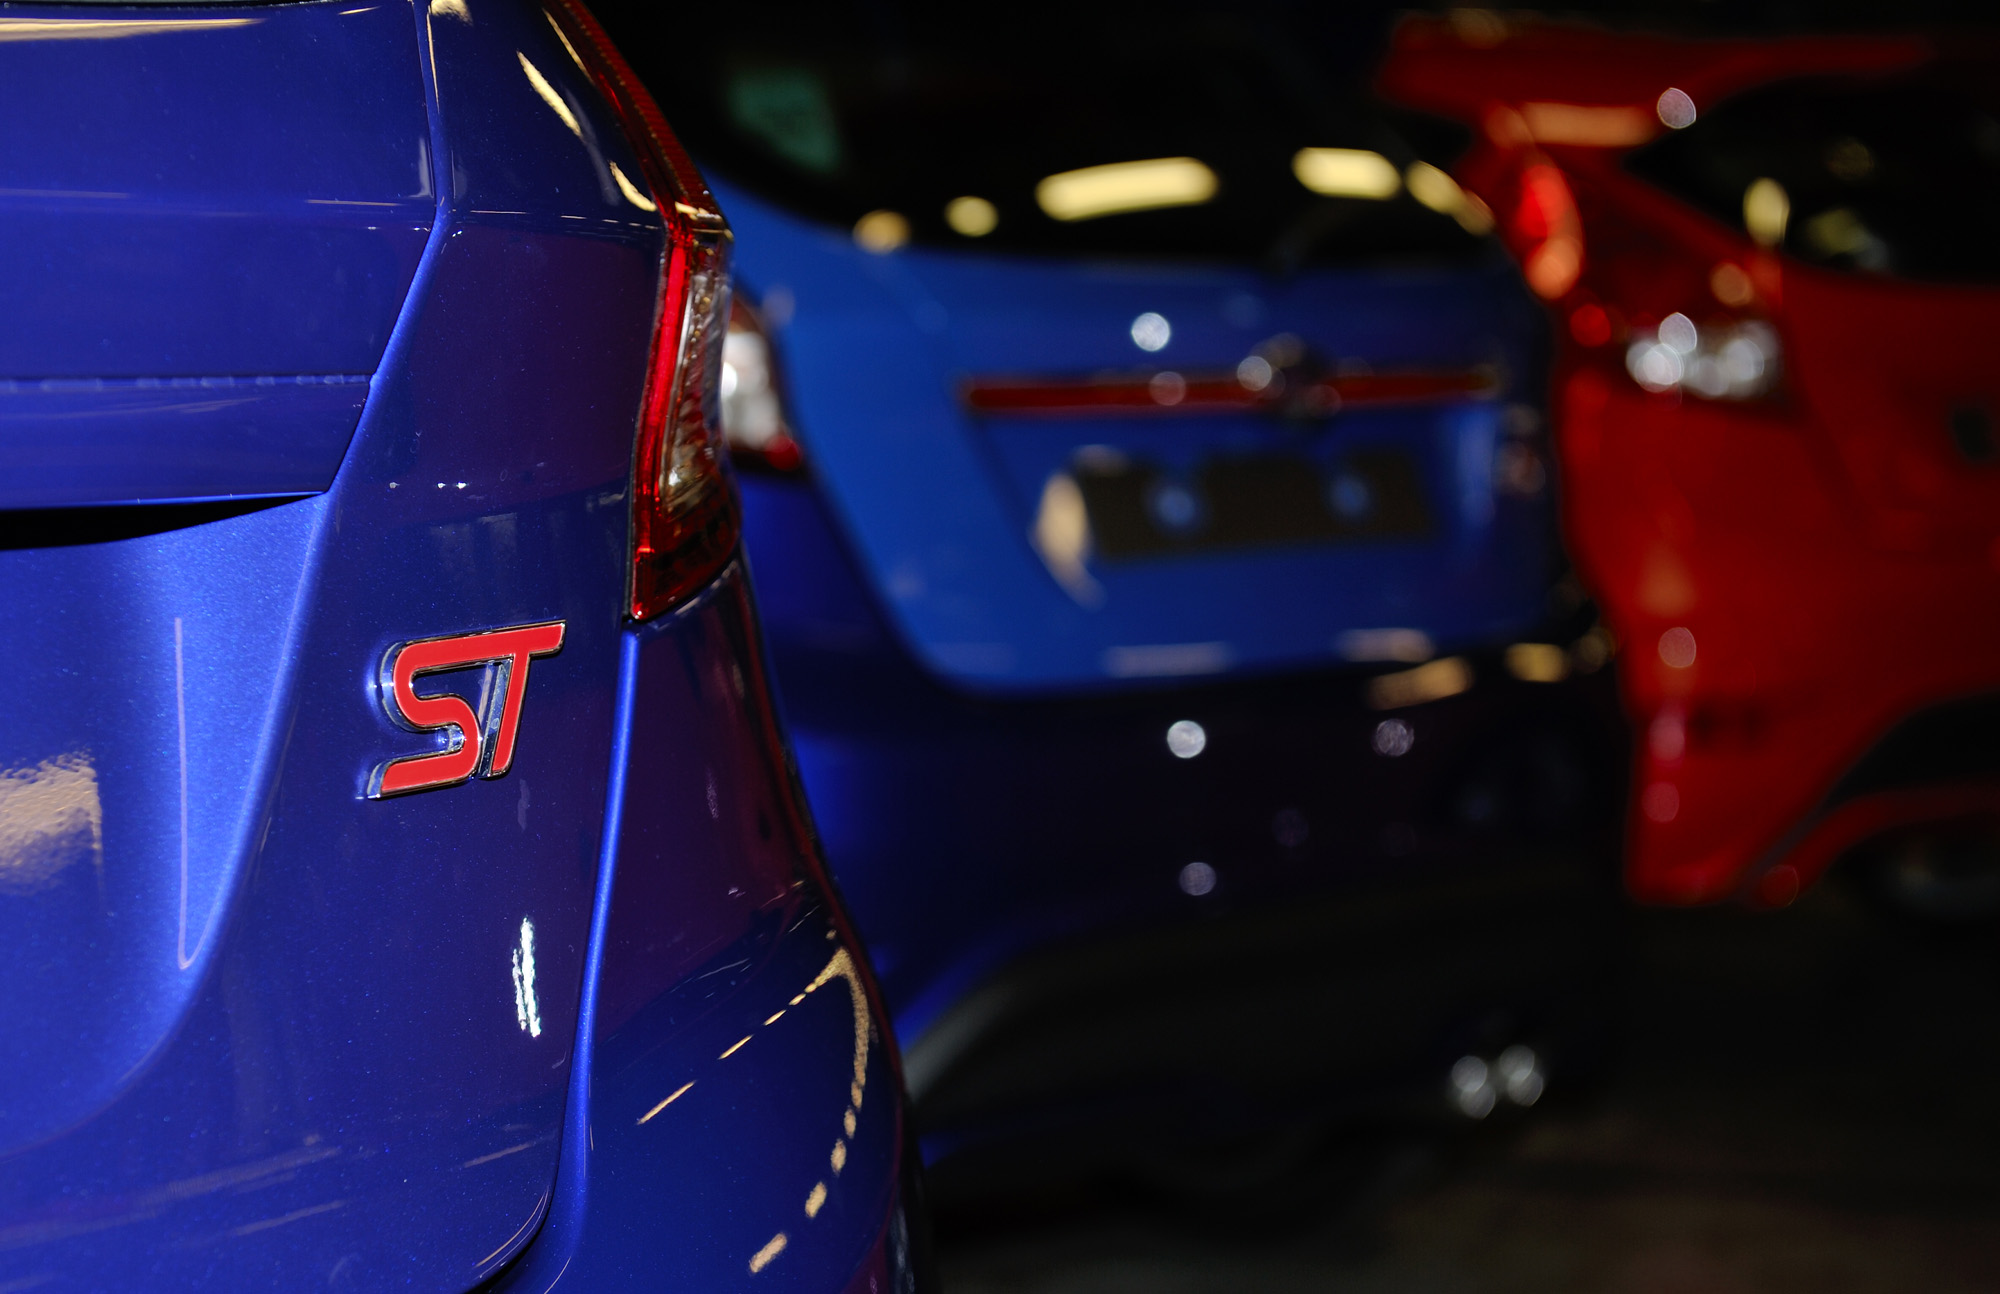 Ford Begins Production of Fastest-Ever Fiesta; Sub-7 Second New